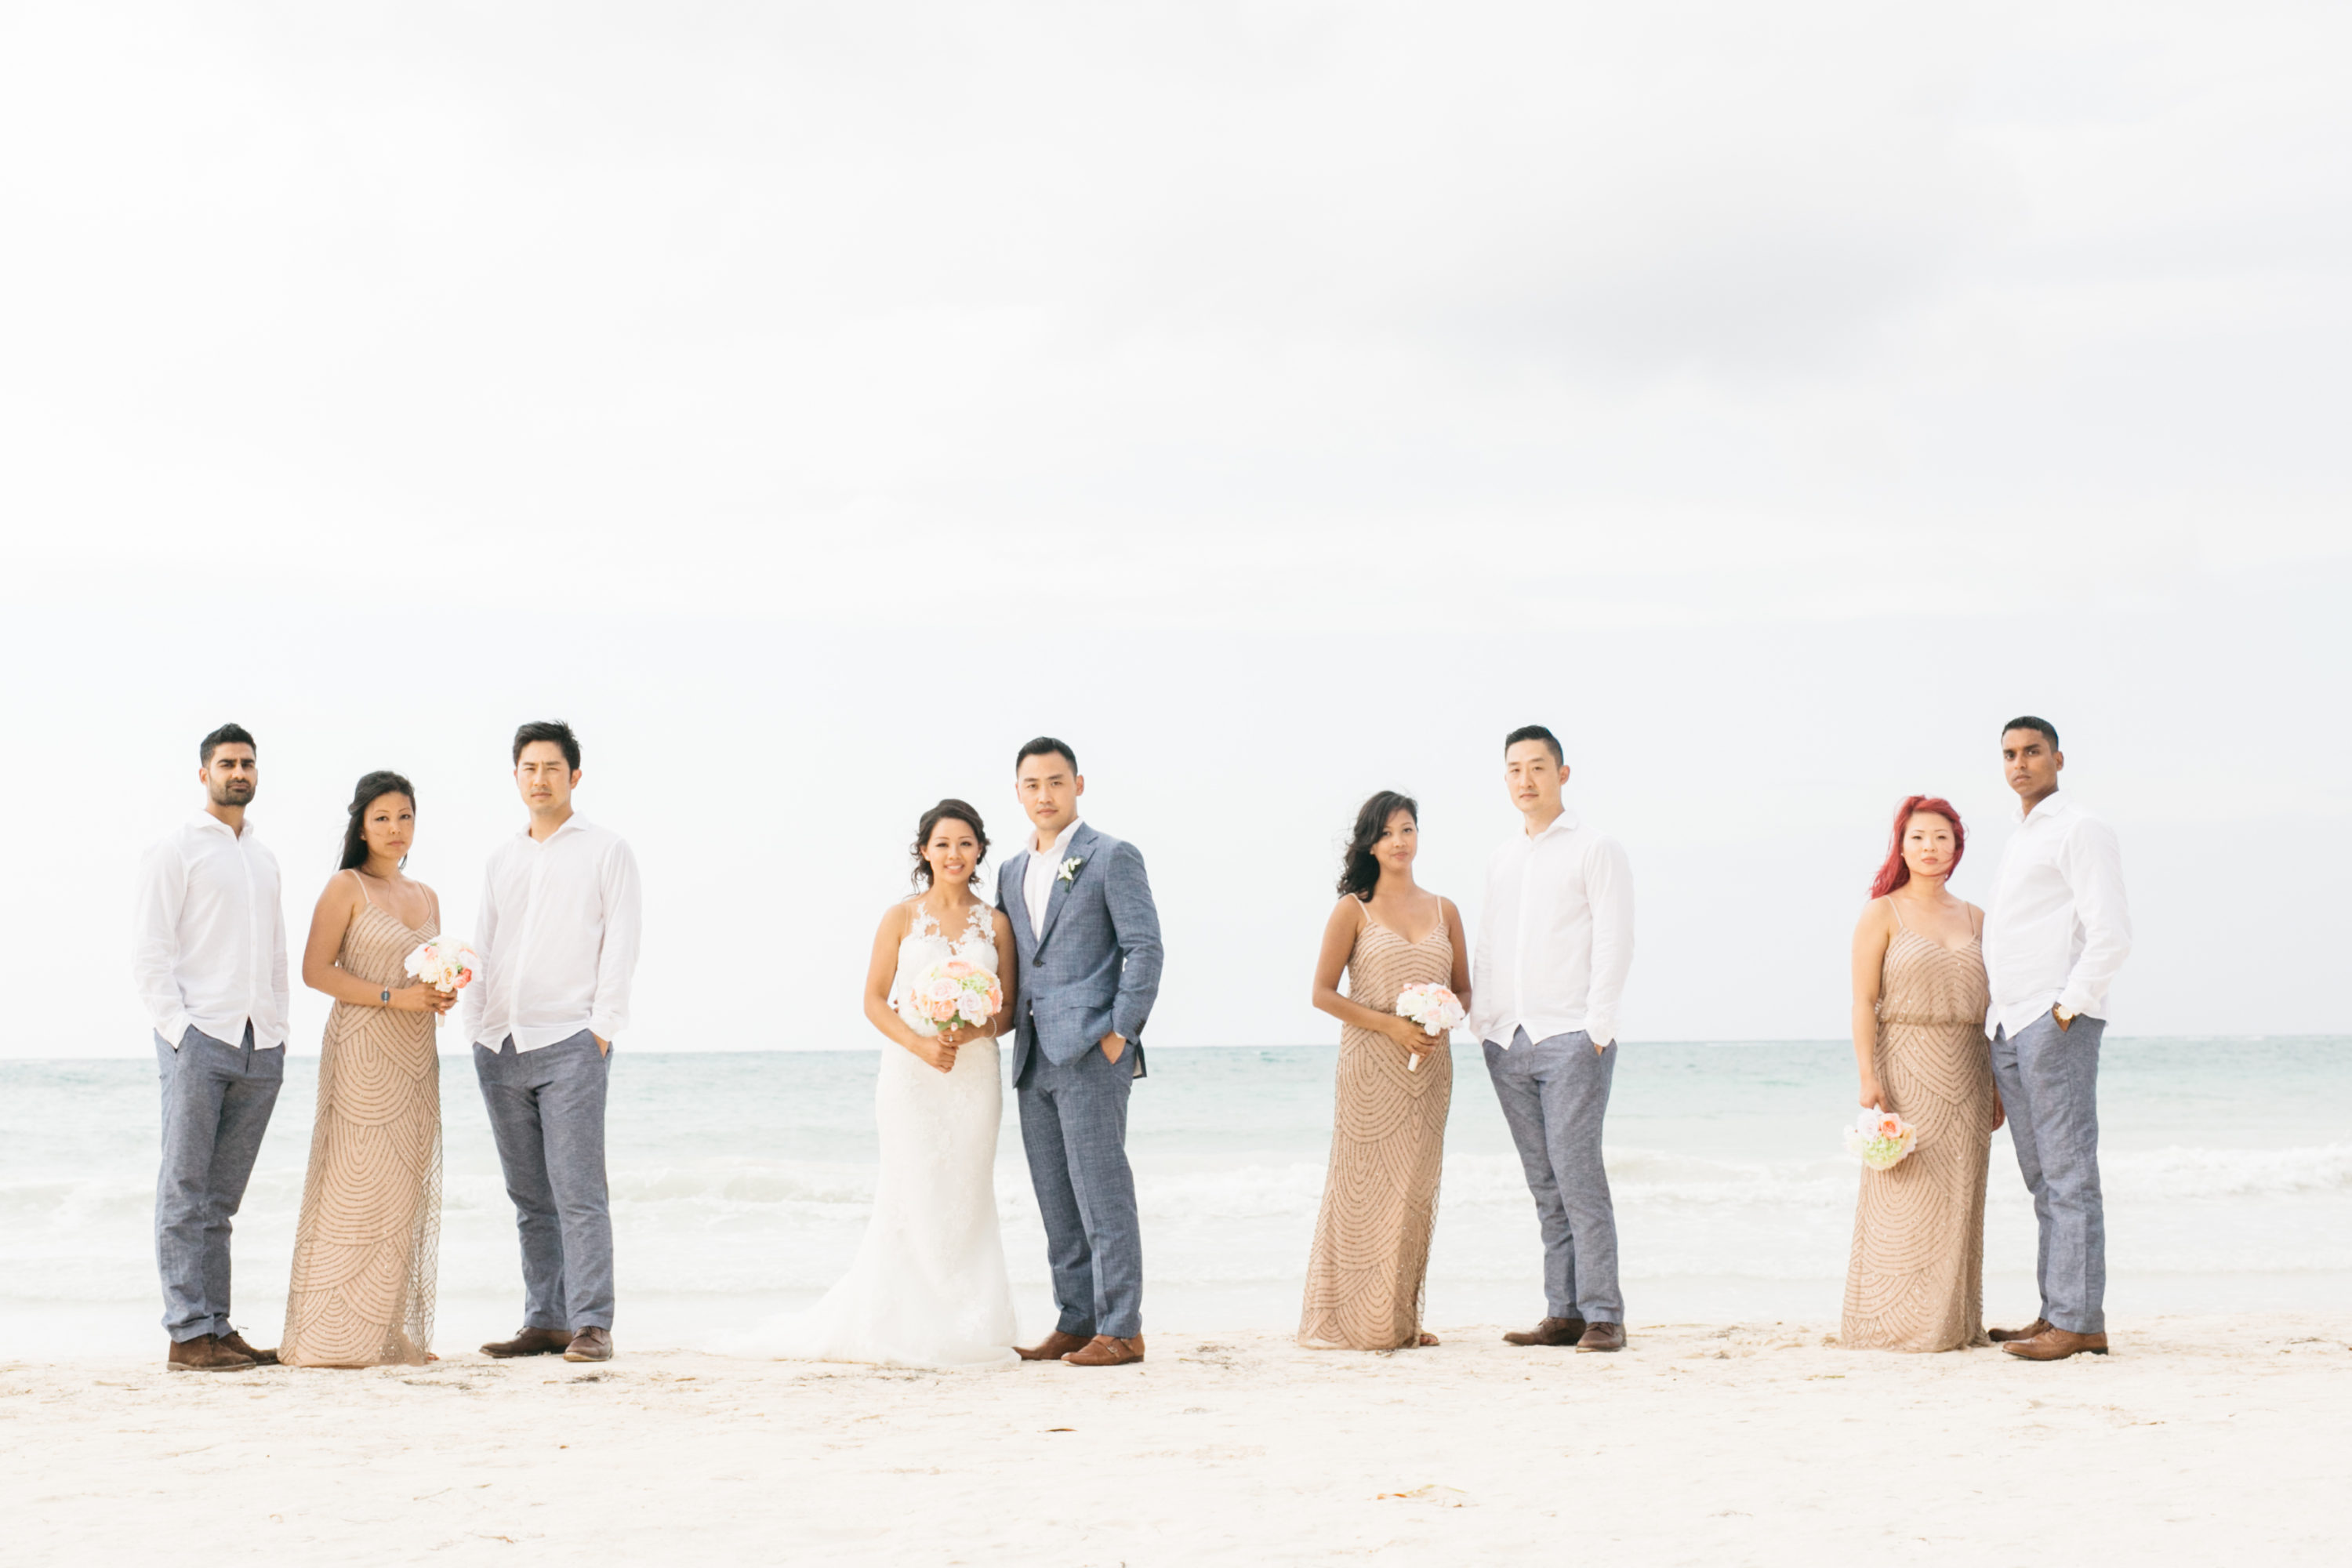 Bridal party portrait at the beach